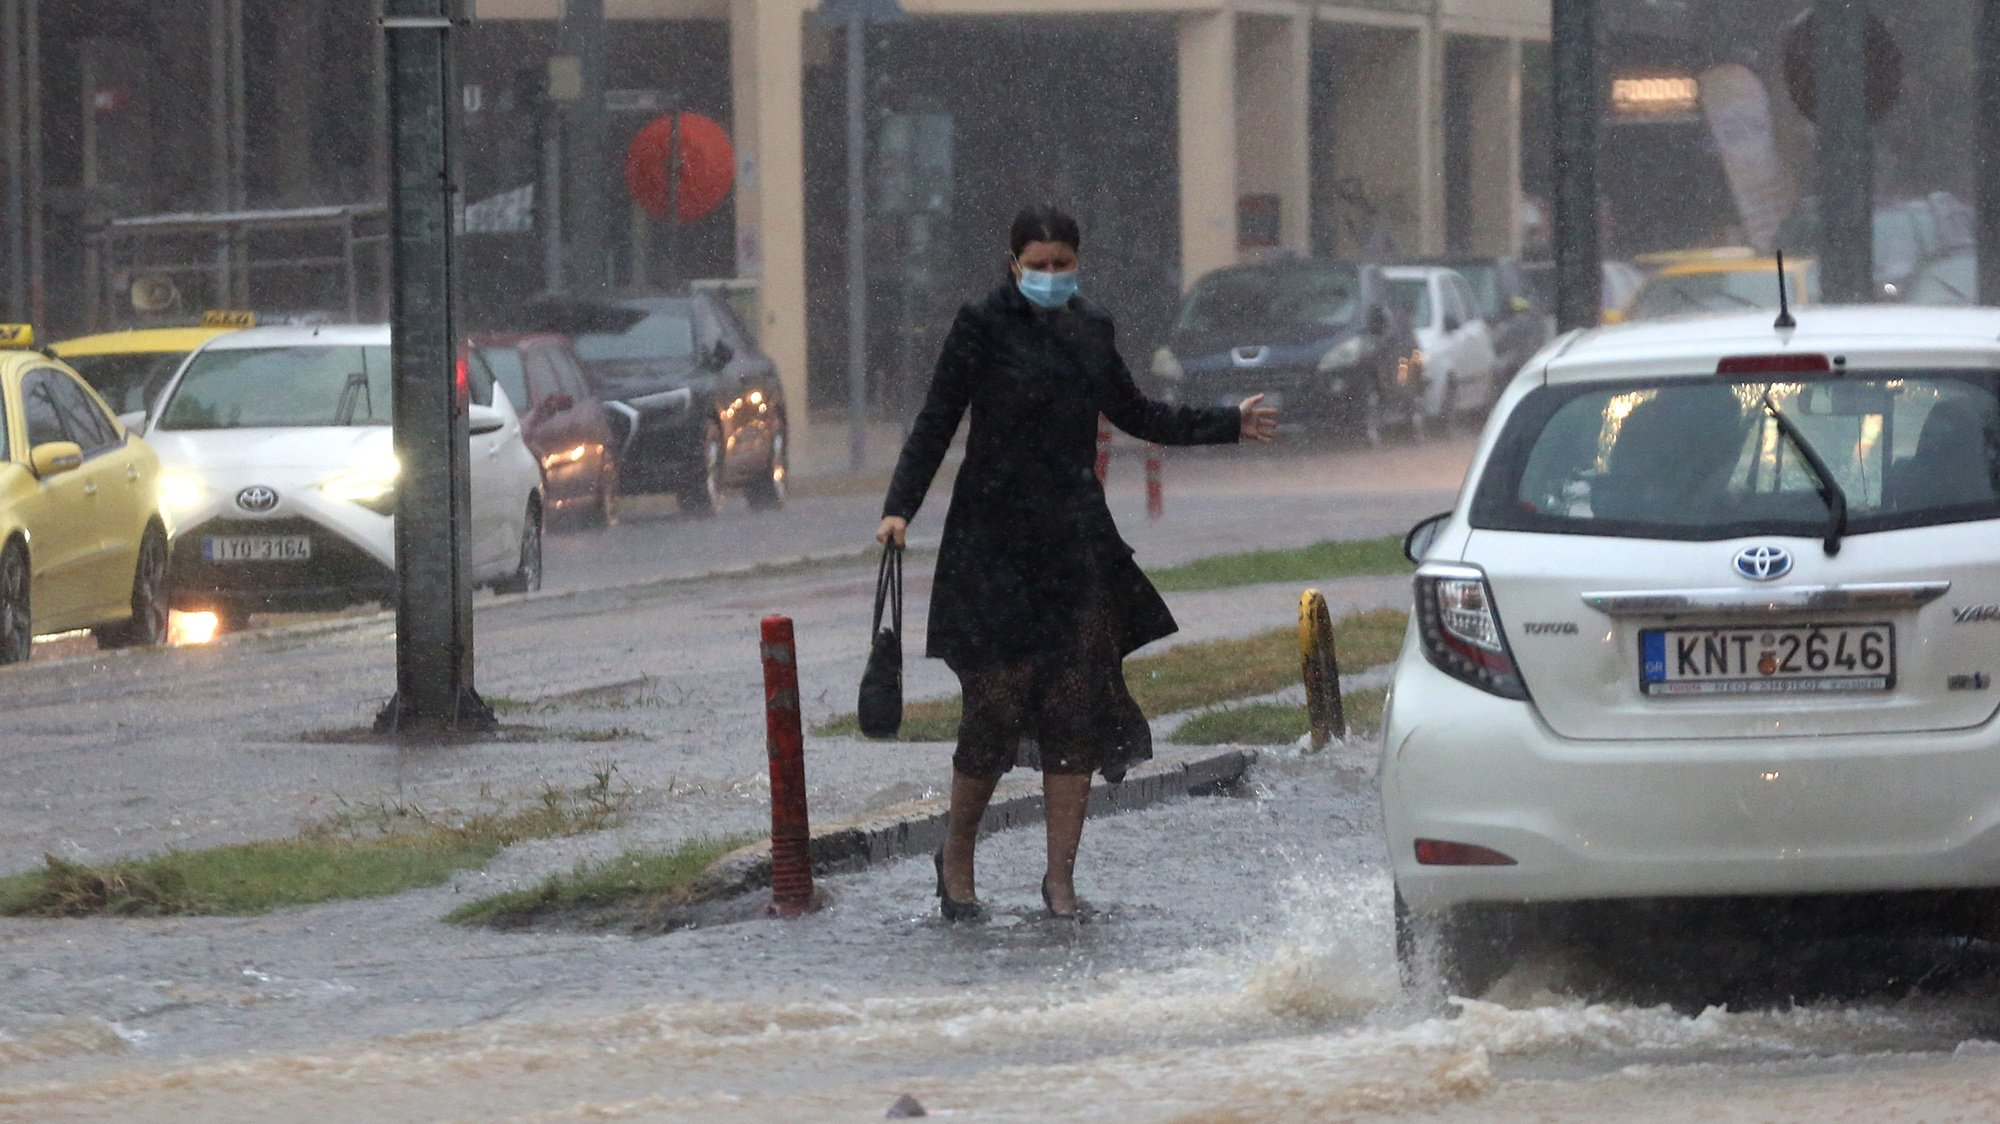 epa09523317 A woman makes her way under heavy rain in Athens, Greece, 14 October 2021. An emergency warning was sent to Attica residents from the 112 Emergency Communications Service on 14 October warning them of dangerous weather conditions and to avoid all non-essential travel.  EPA/ORESTIS PANAGIOTOU